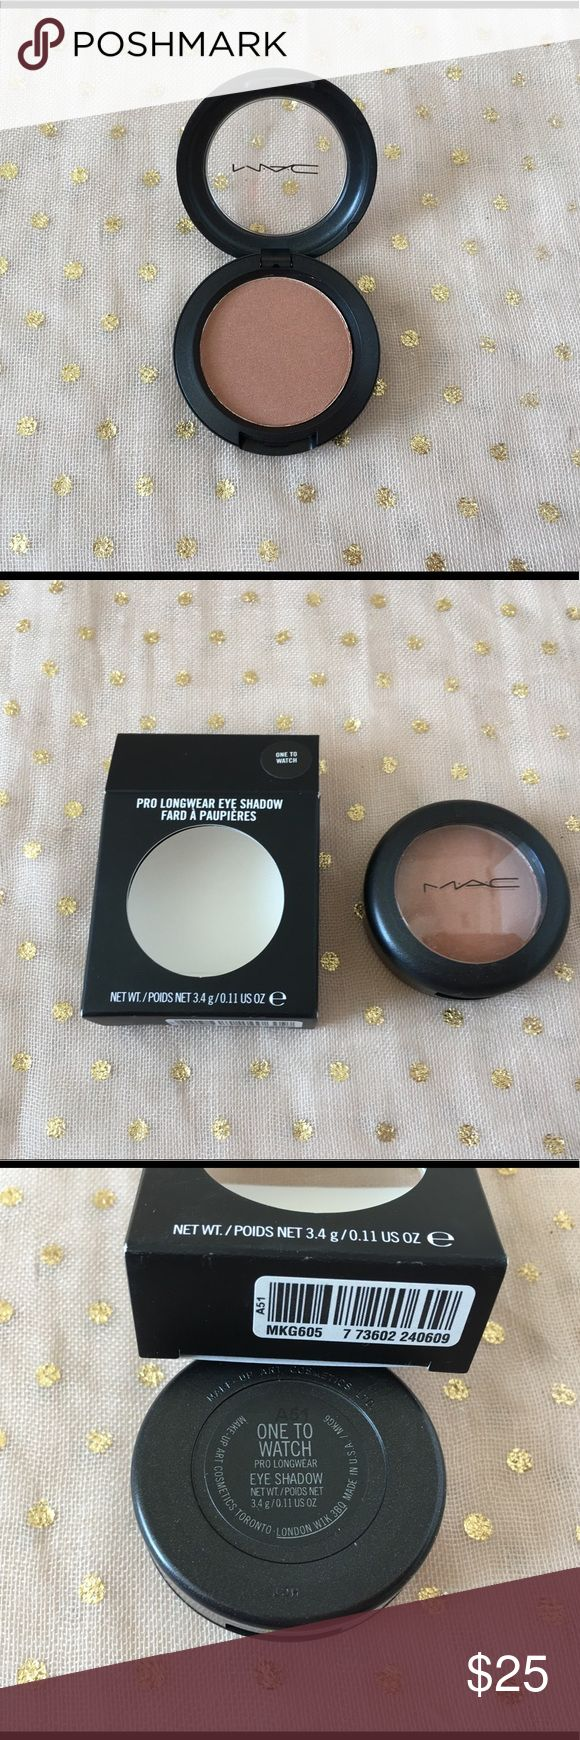 MAC Pro Longwear Eyeshadow One To Watch New in box. Never used or swatched. MAC Pro Longwear Eyeshadow in One To Watch, large eyeshadow (3.4g). Limited Edition. MAC Cosmetics Makeup Eyeshadow